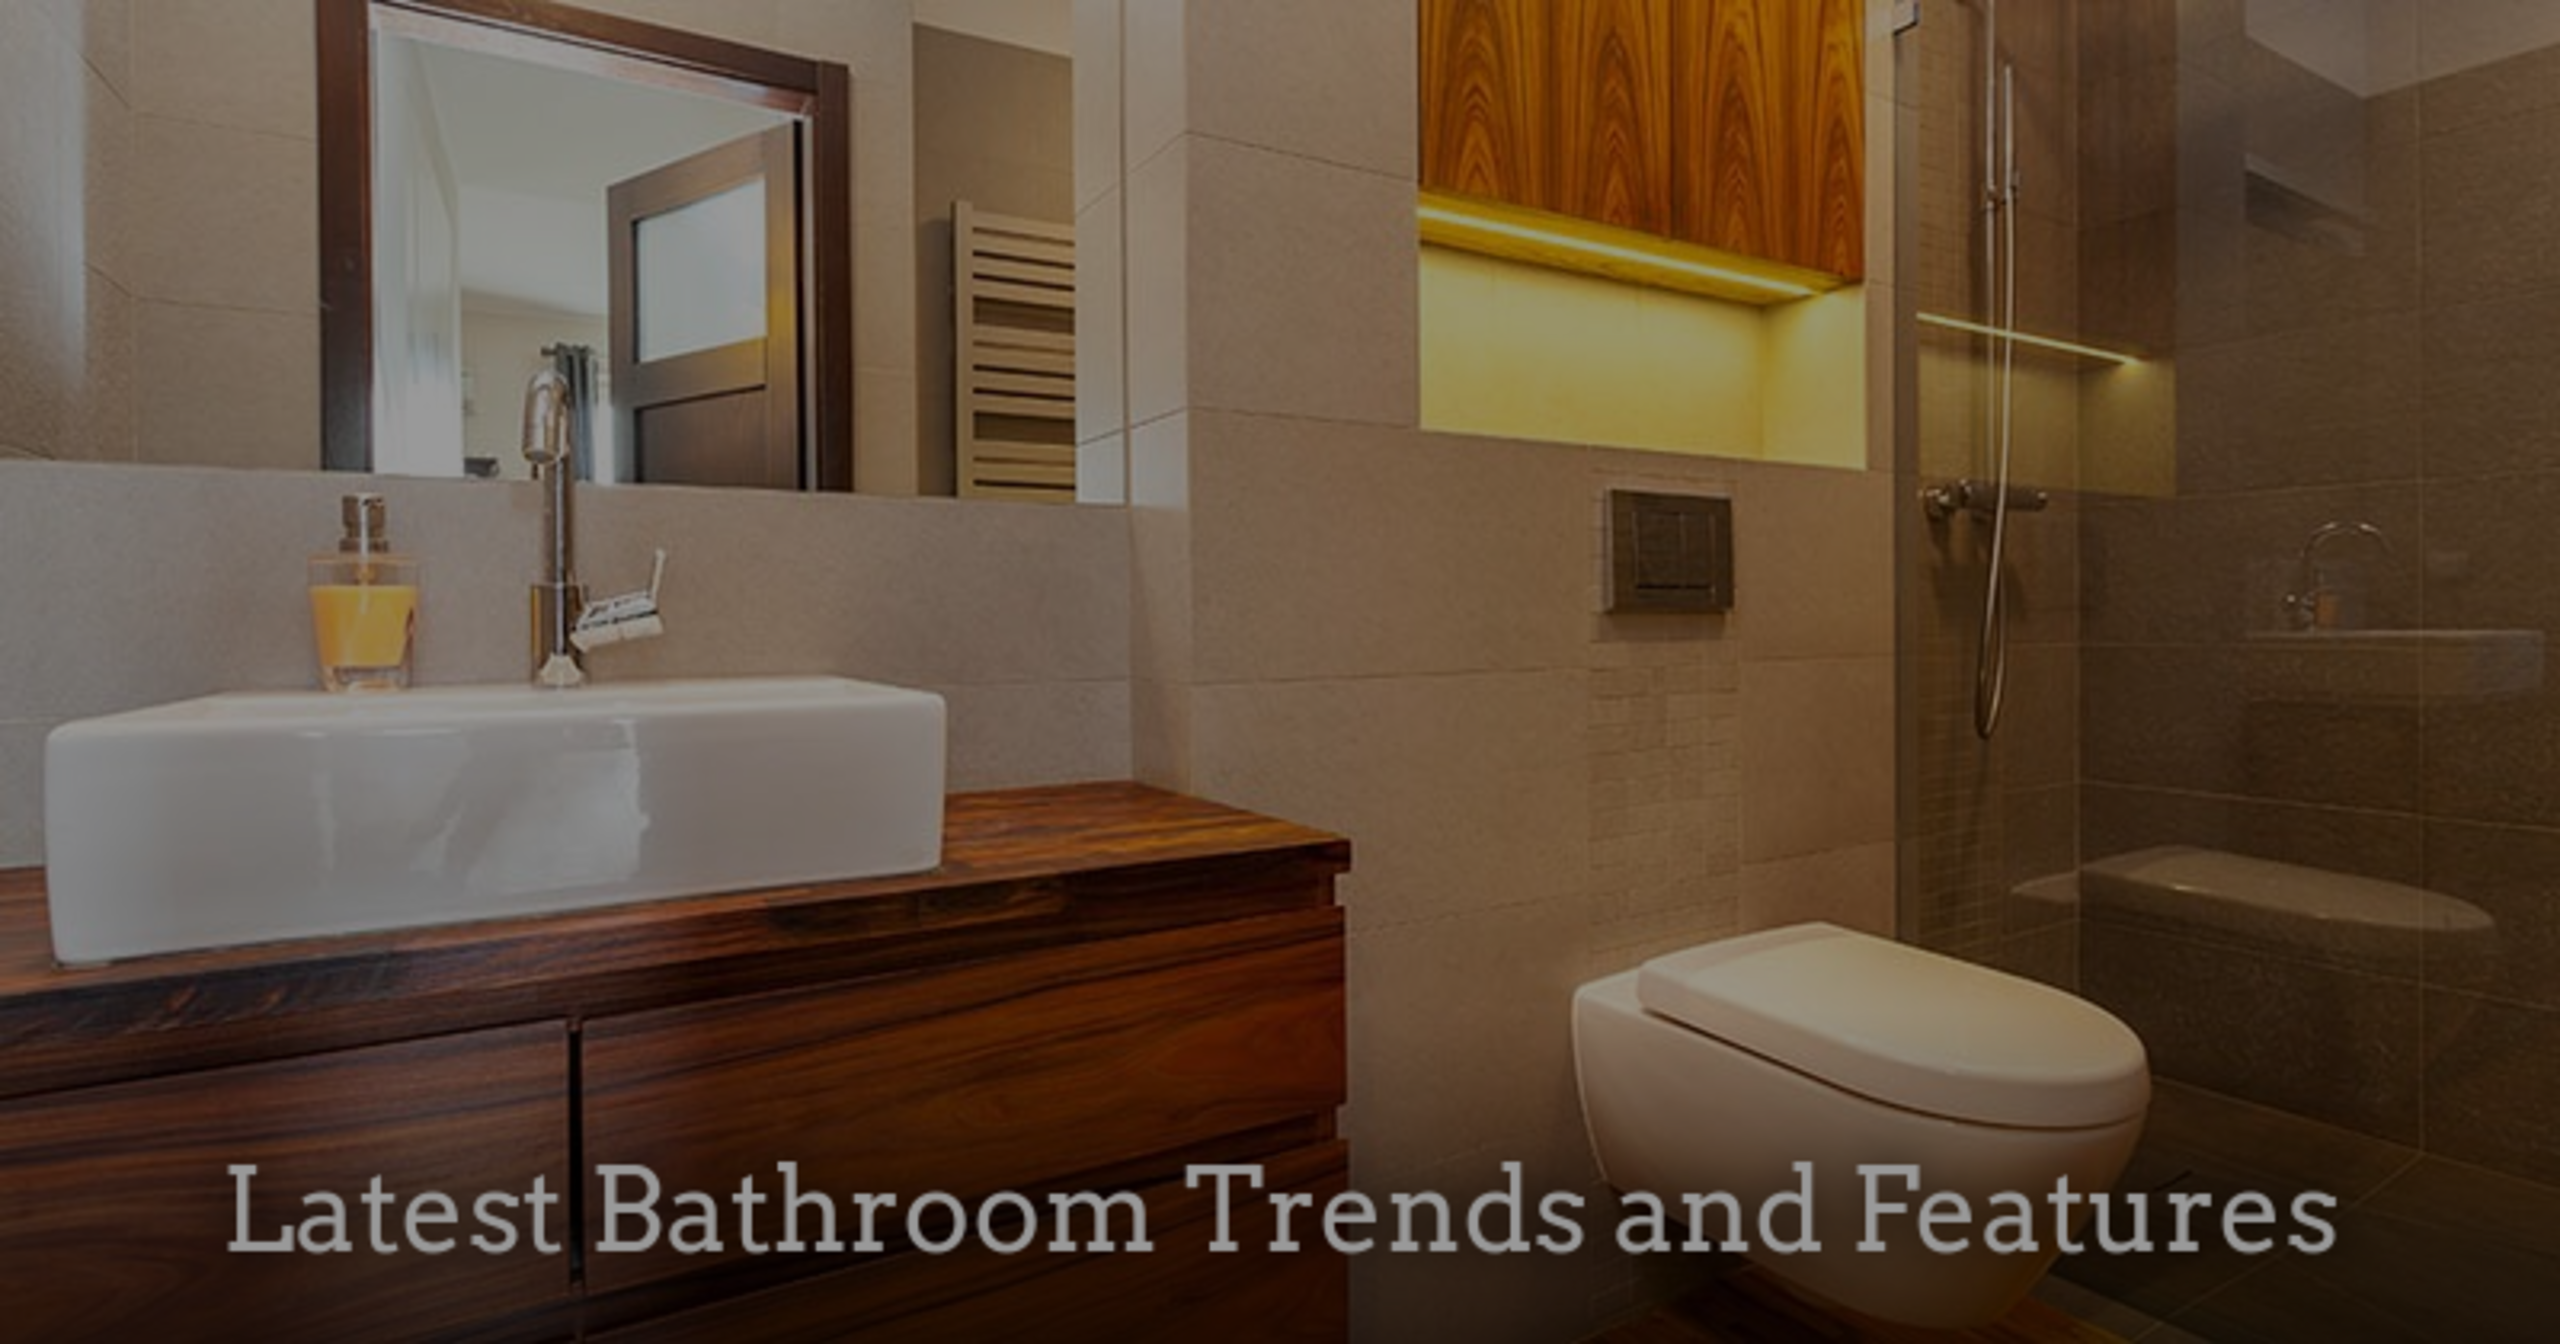 Latest Bathroom Trends and Features